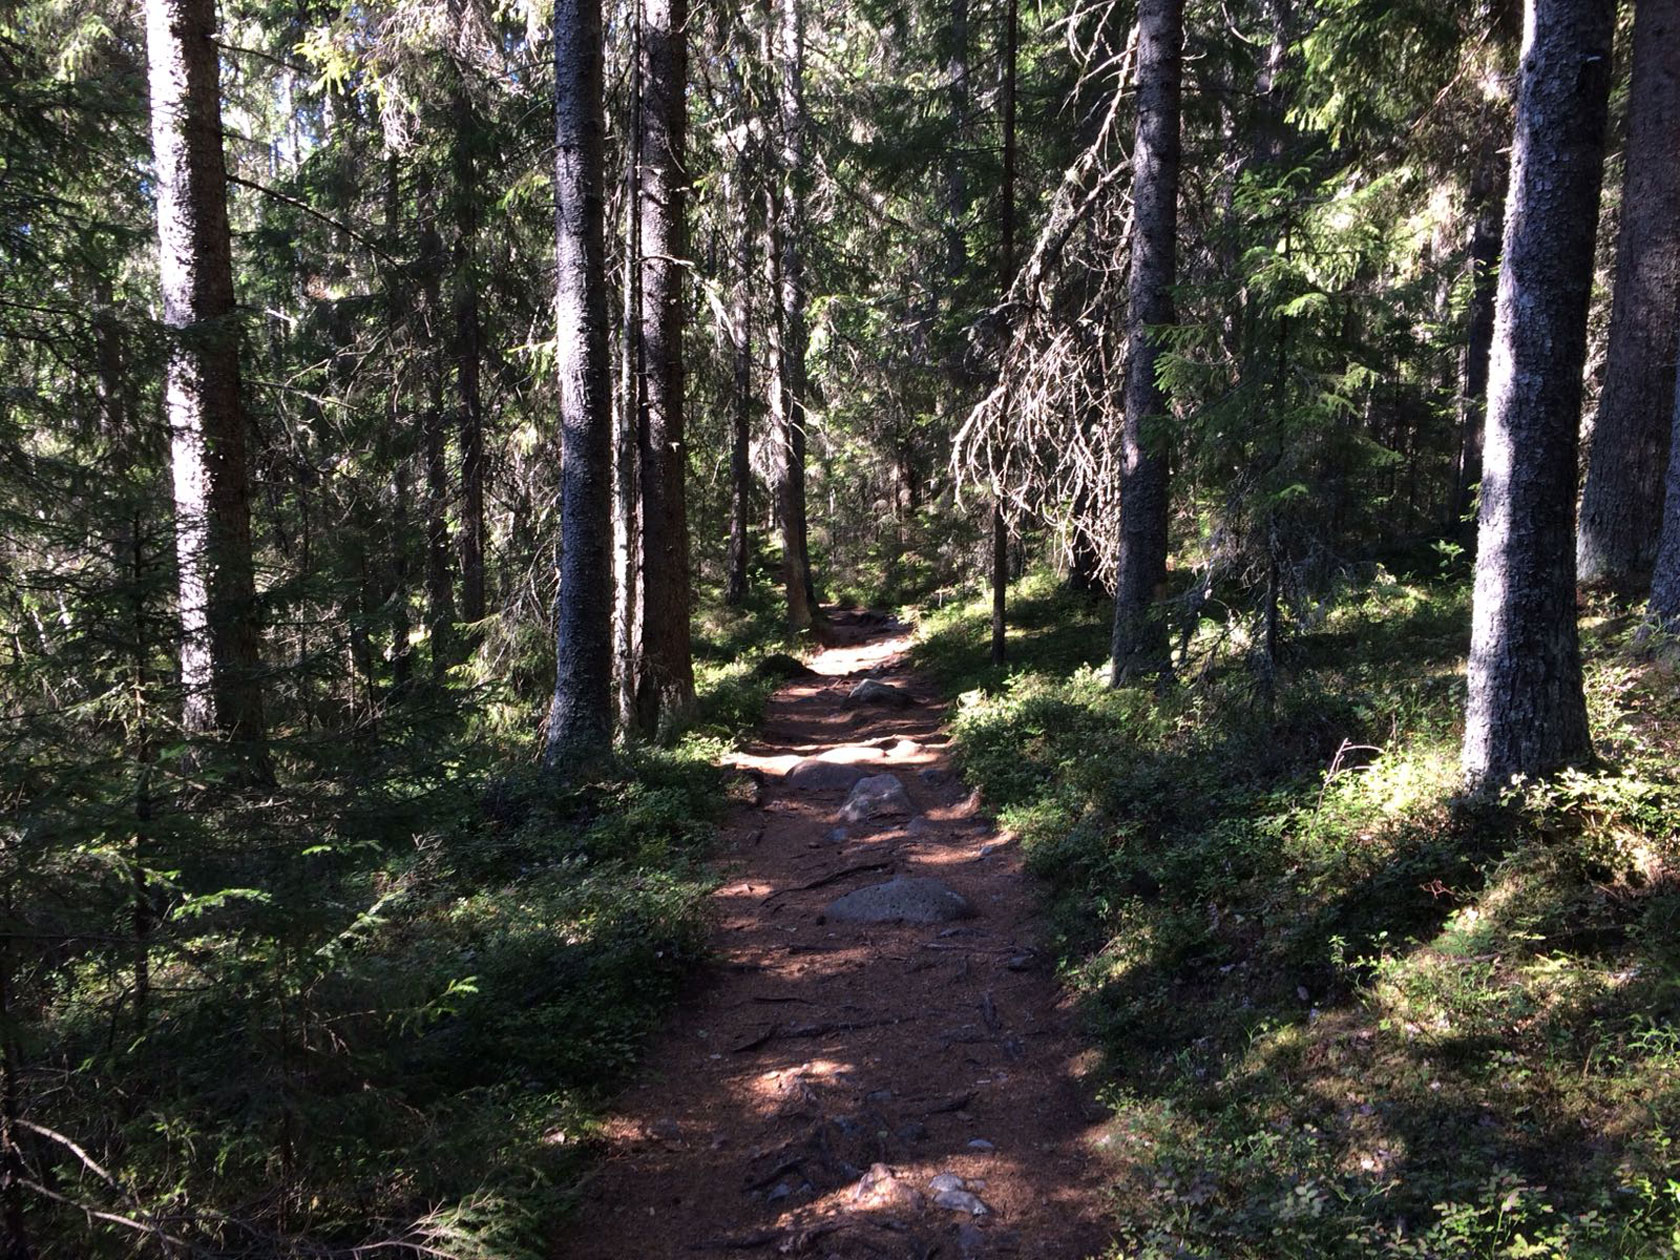 Hiking the natural paths into the Skuleskogen forest